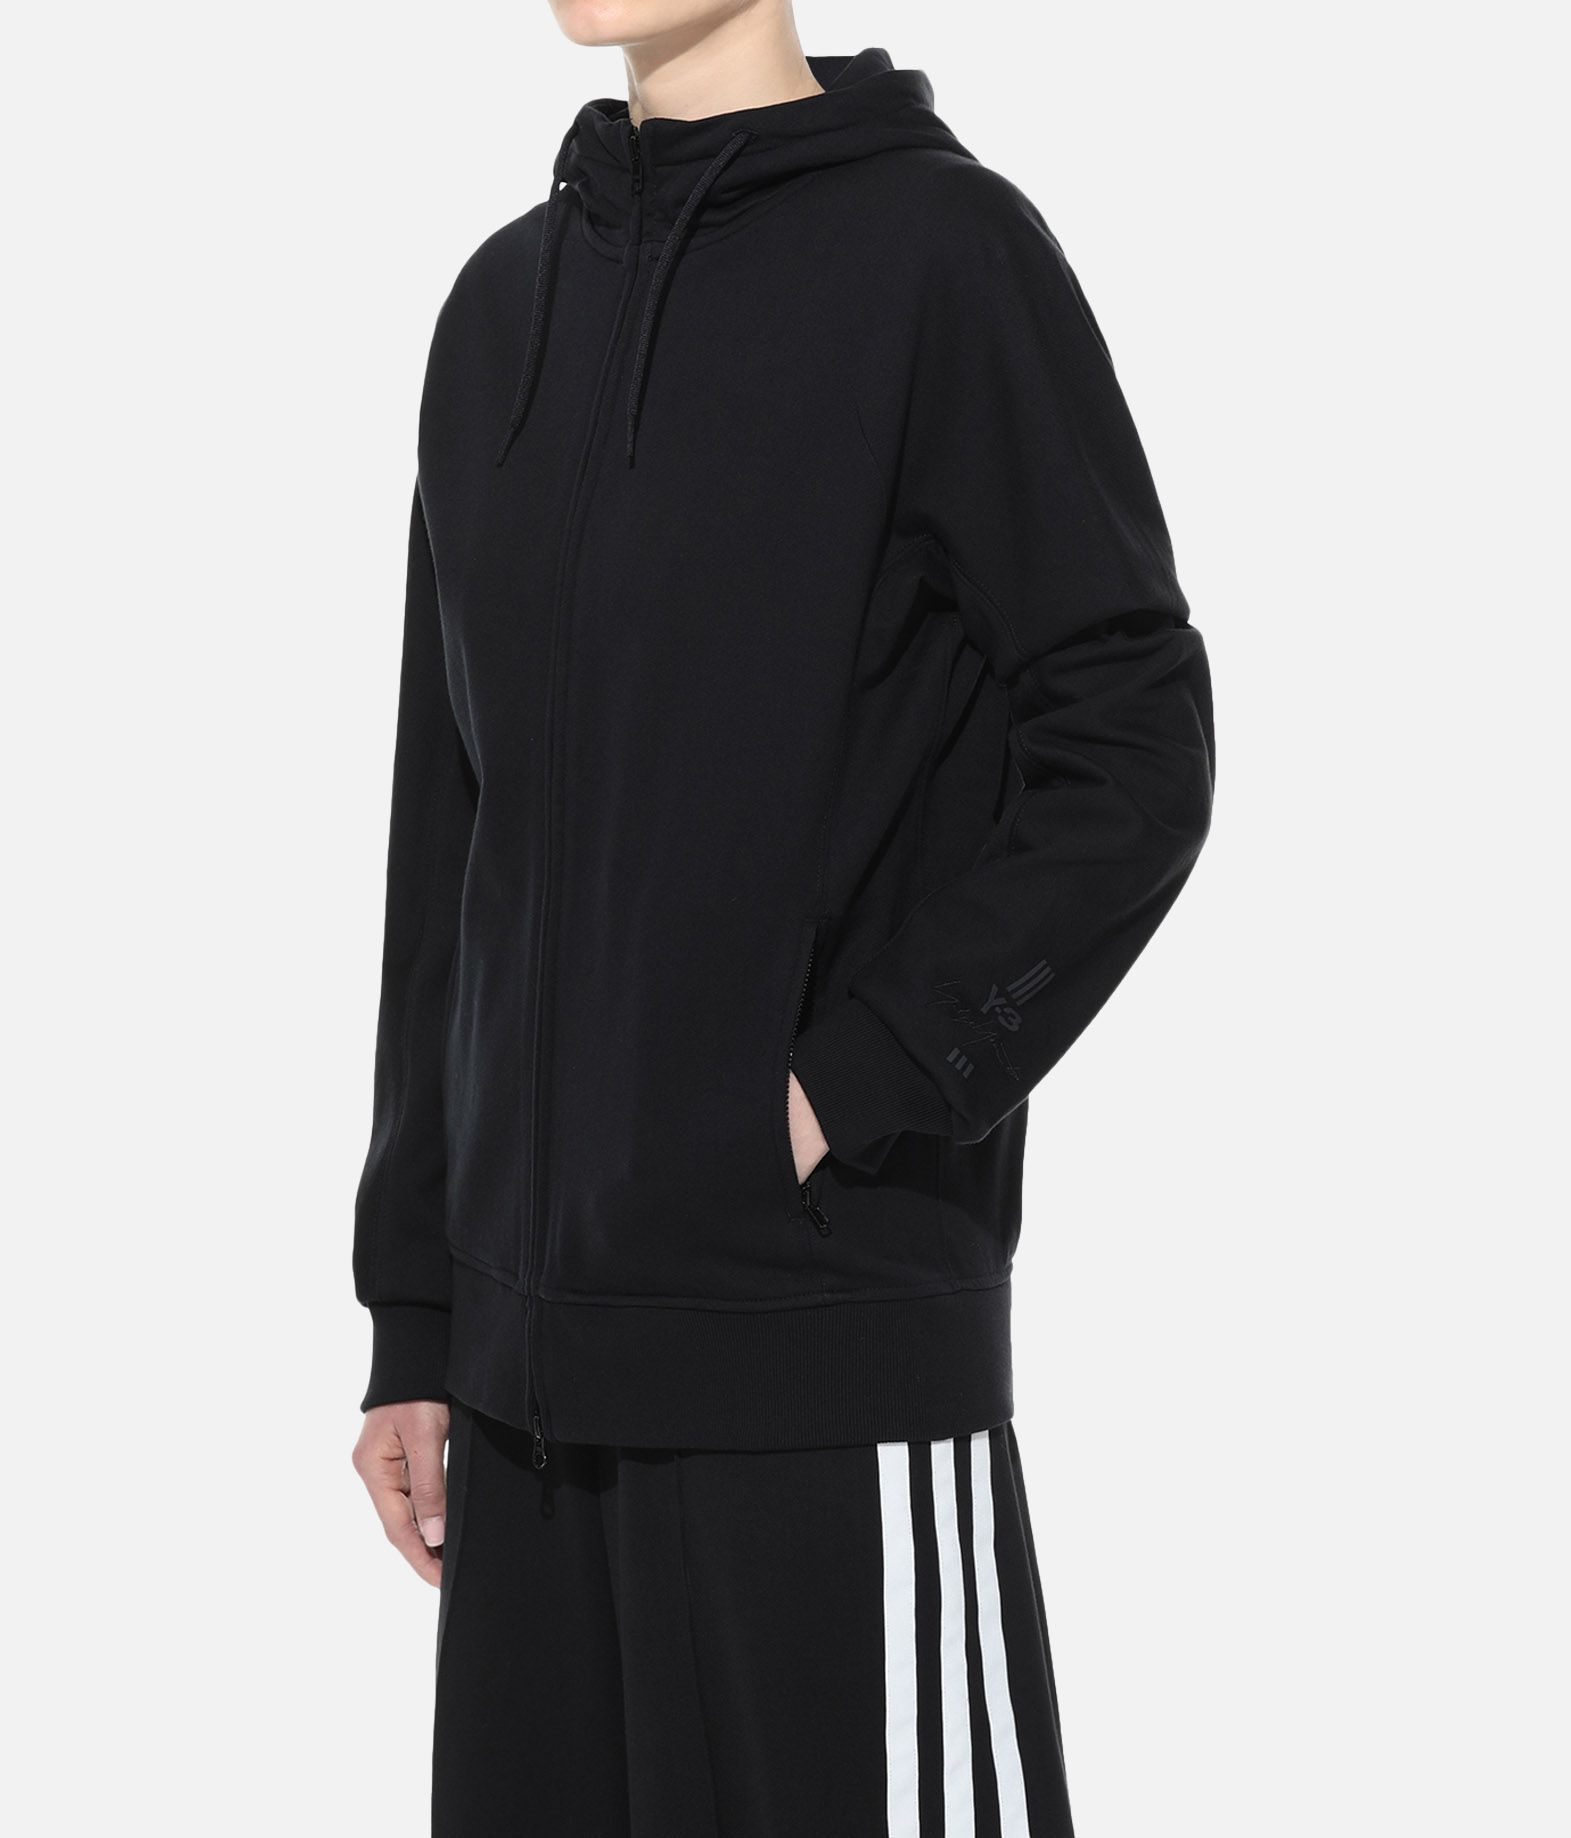 Y-3 Y-3 New Classic Hoodie  Hooded sweatshirt Woman e